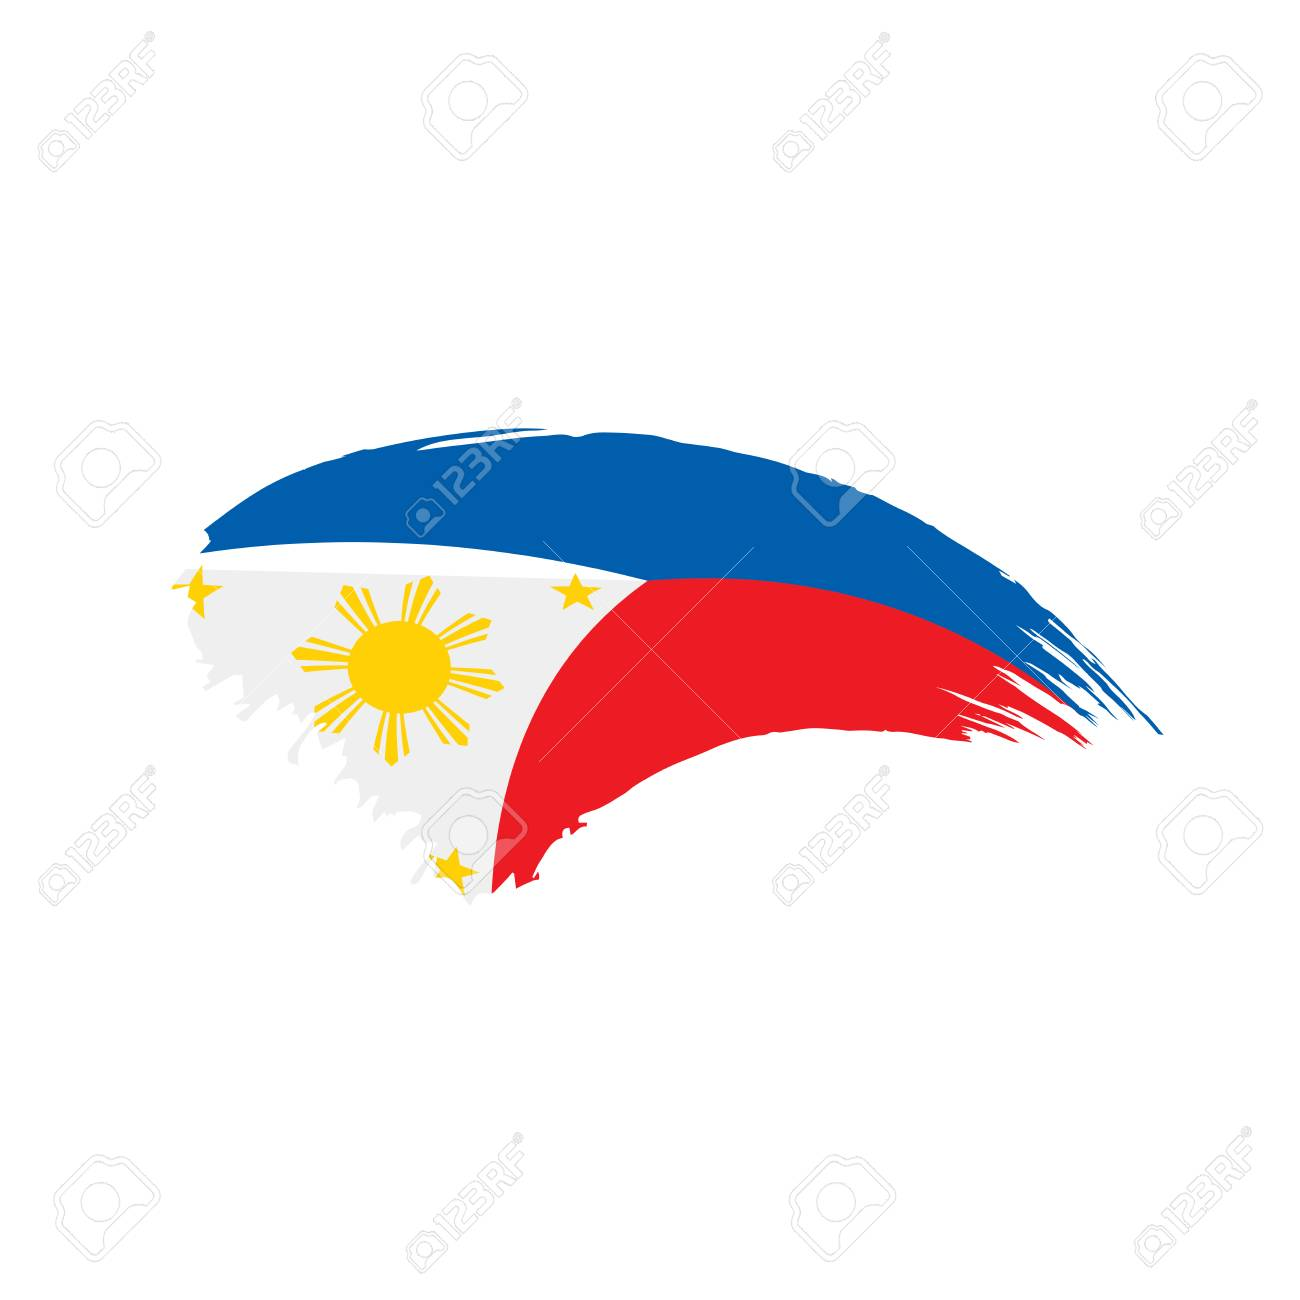 Philippines Flag Vector Illustration Royalty Free Cliparts Vectors And Stock Illustration Image 97132191 You can download, edit these vectors for personal use for your presentations, webblogs, or other project designs. philippines flag vector illustration